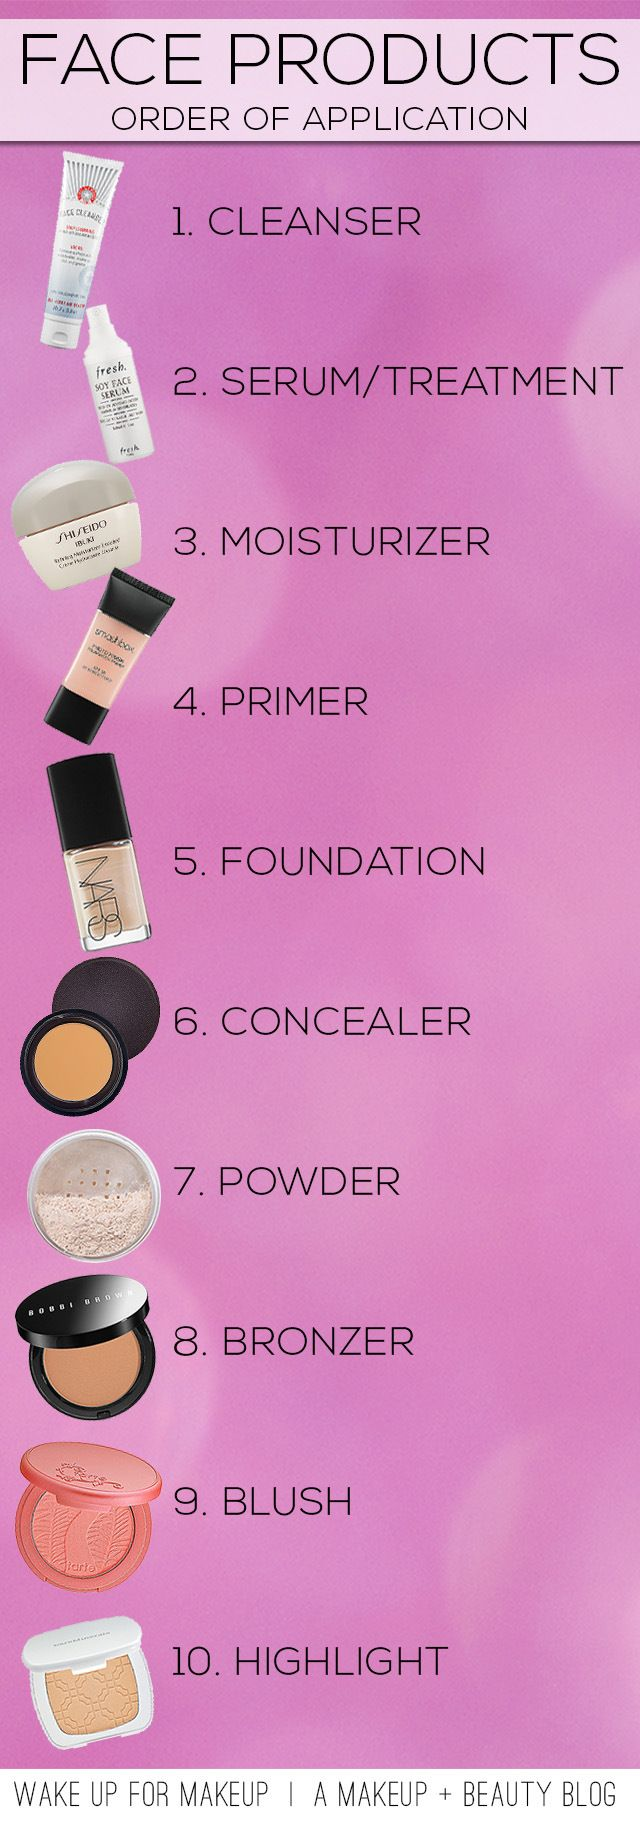 I do all these steps except primer, powder and highlighter in this order and my makeup does great!